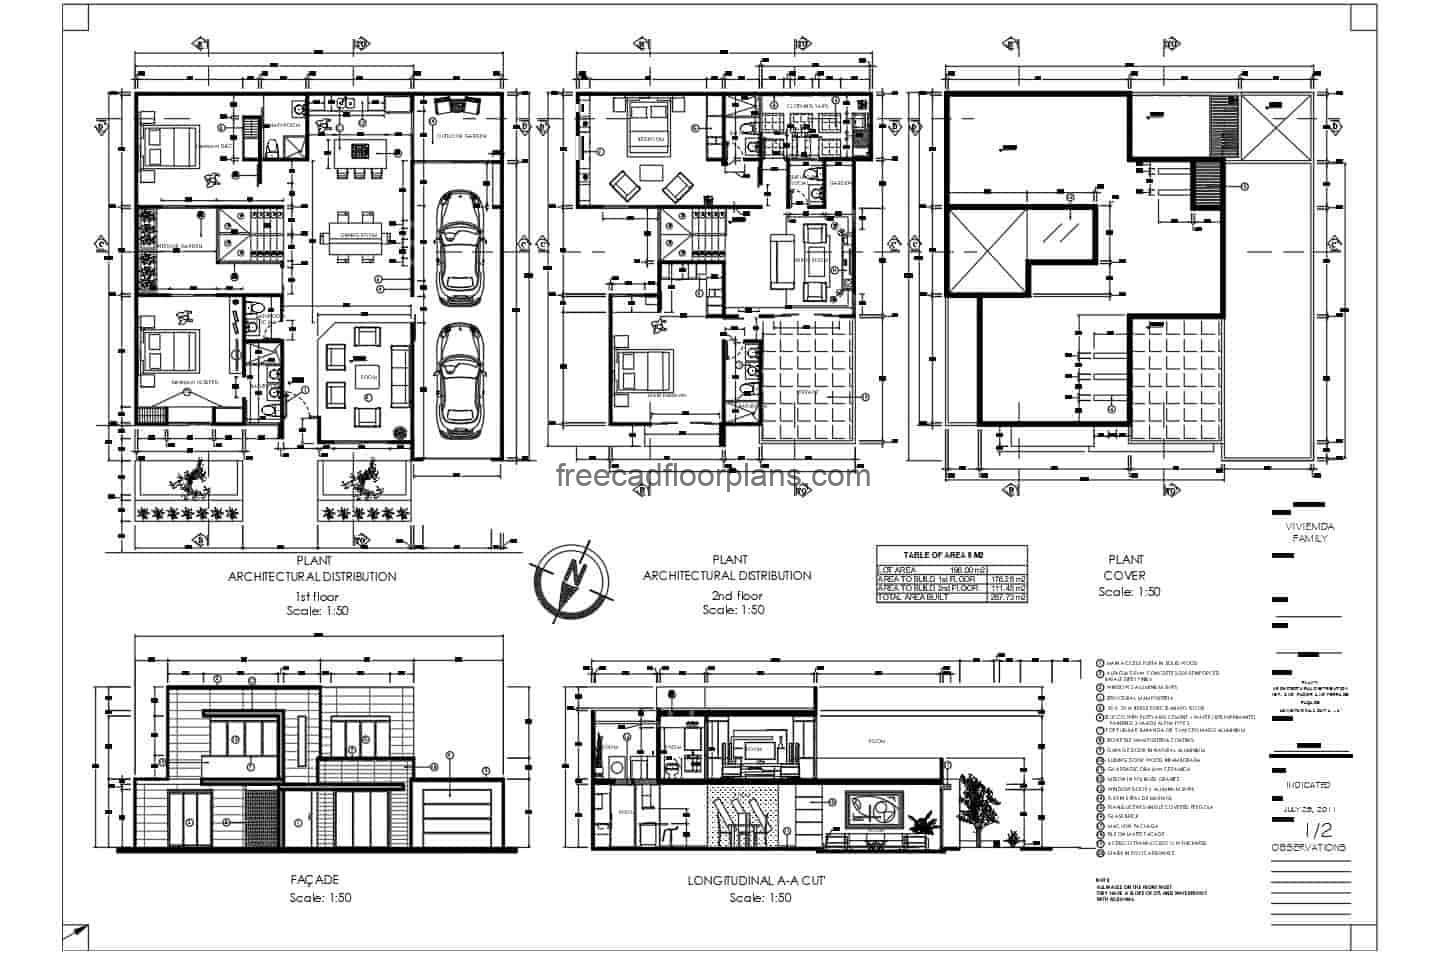 2D plans of a complete pre-project of a modern residence of two levels of concrete with four rooms in total divided into two levels, first level, parking for two vehicles, two bedrooms, living room, kitchen, dining room, laundry area and three bathrooms Second level private area with two bedrooms, family room and terrace. Plan with interior details in Autocad DWG format for free download.